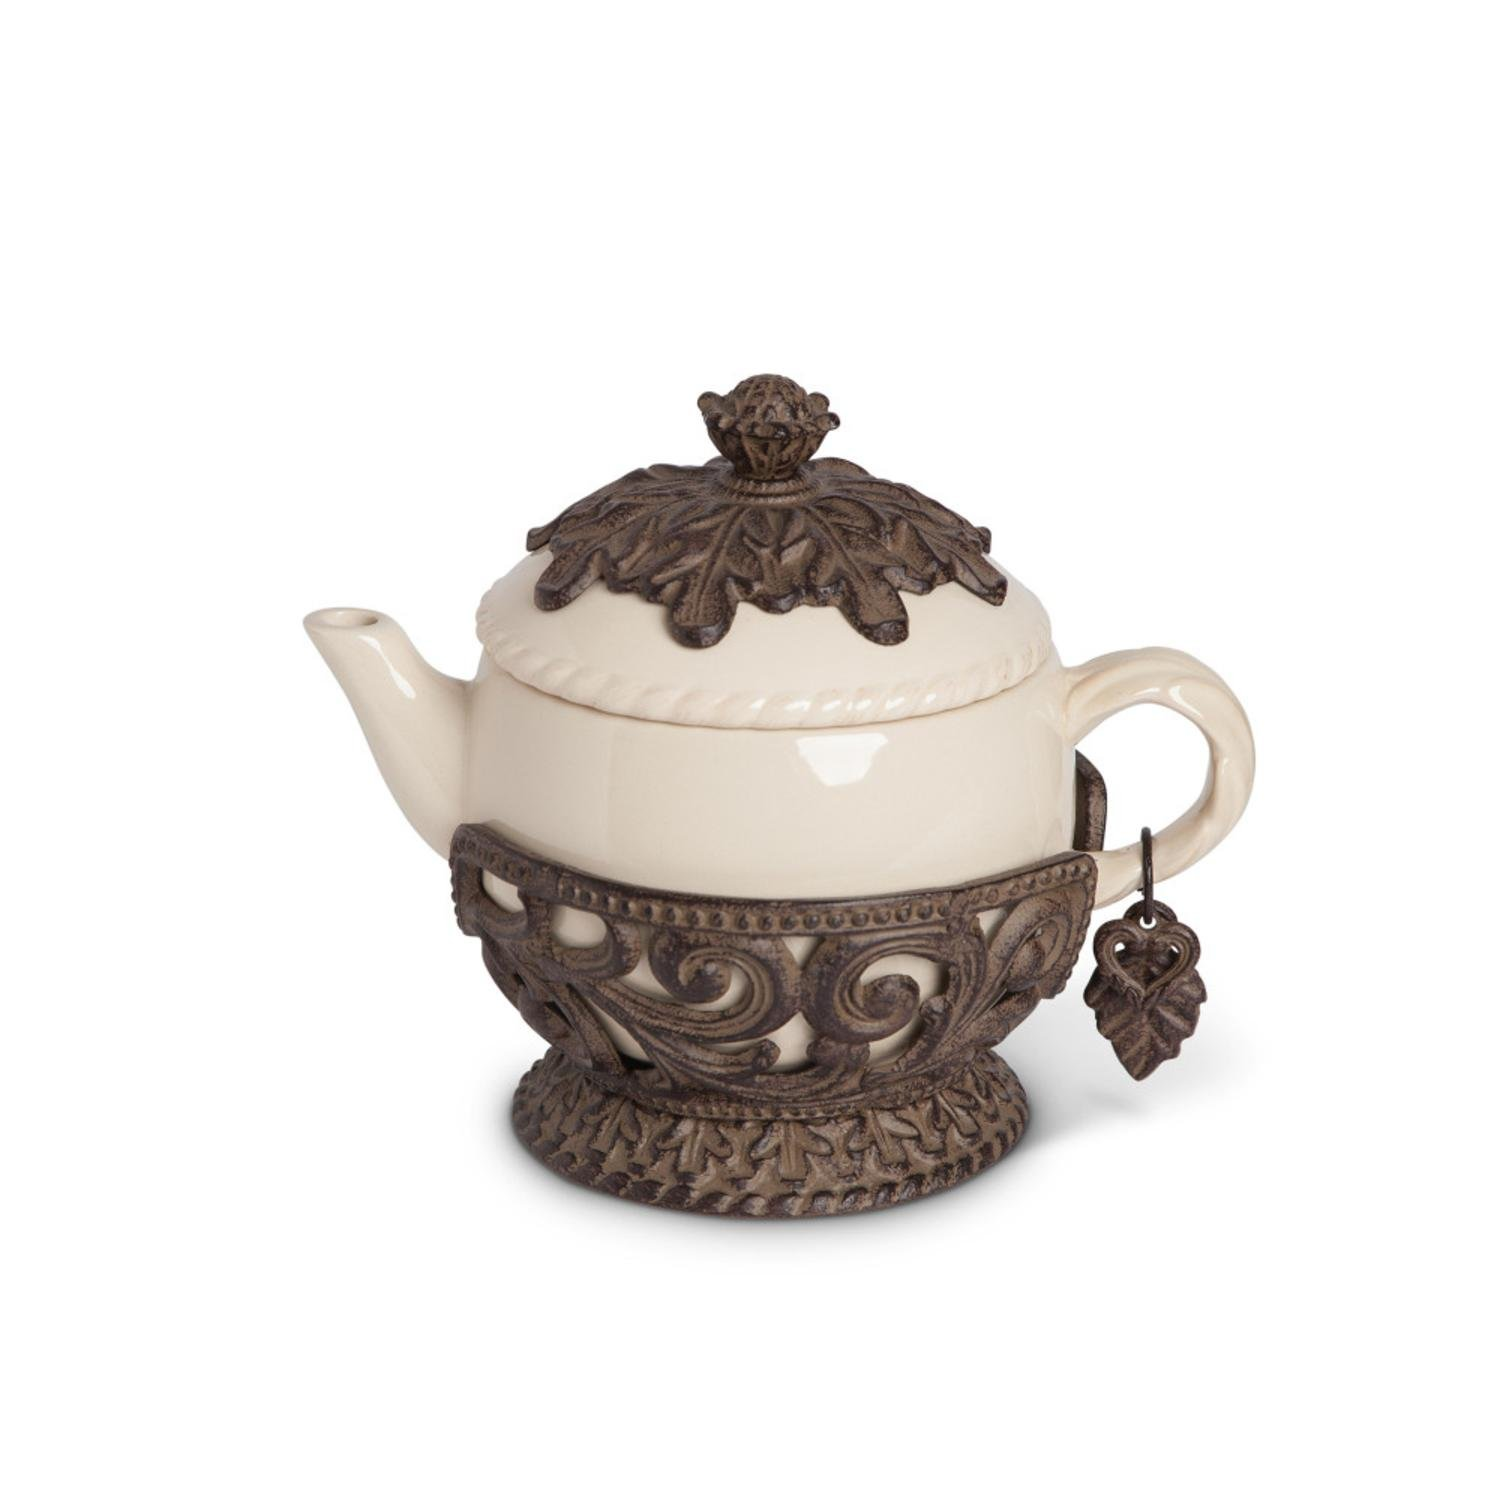 32 oz Cream and Brown Party Decorative Teapot with Acanthus Leaf Base